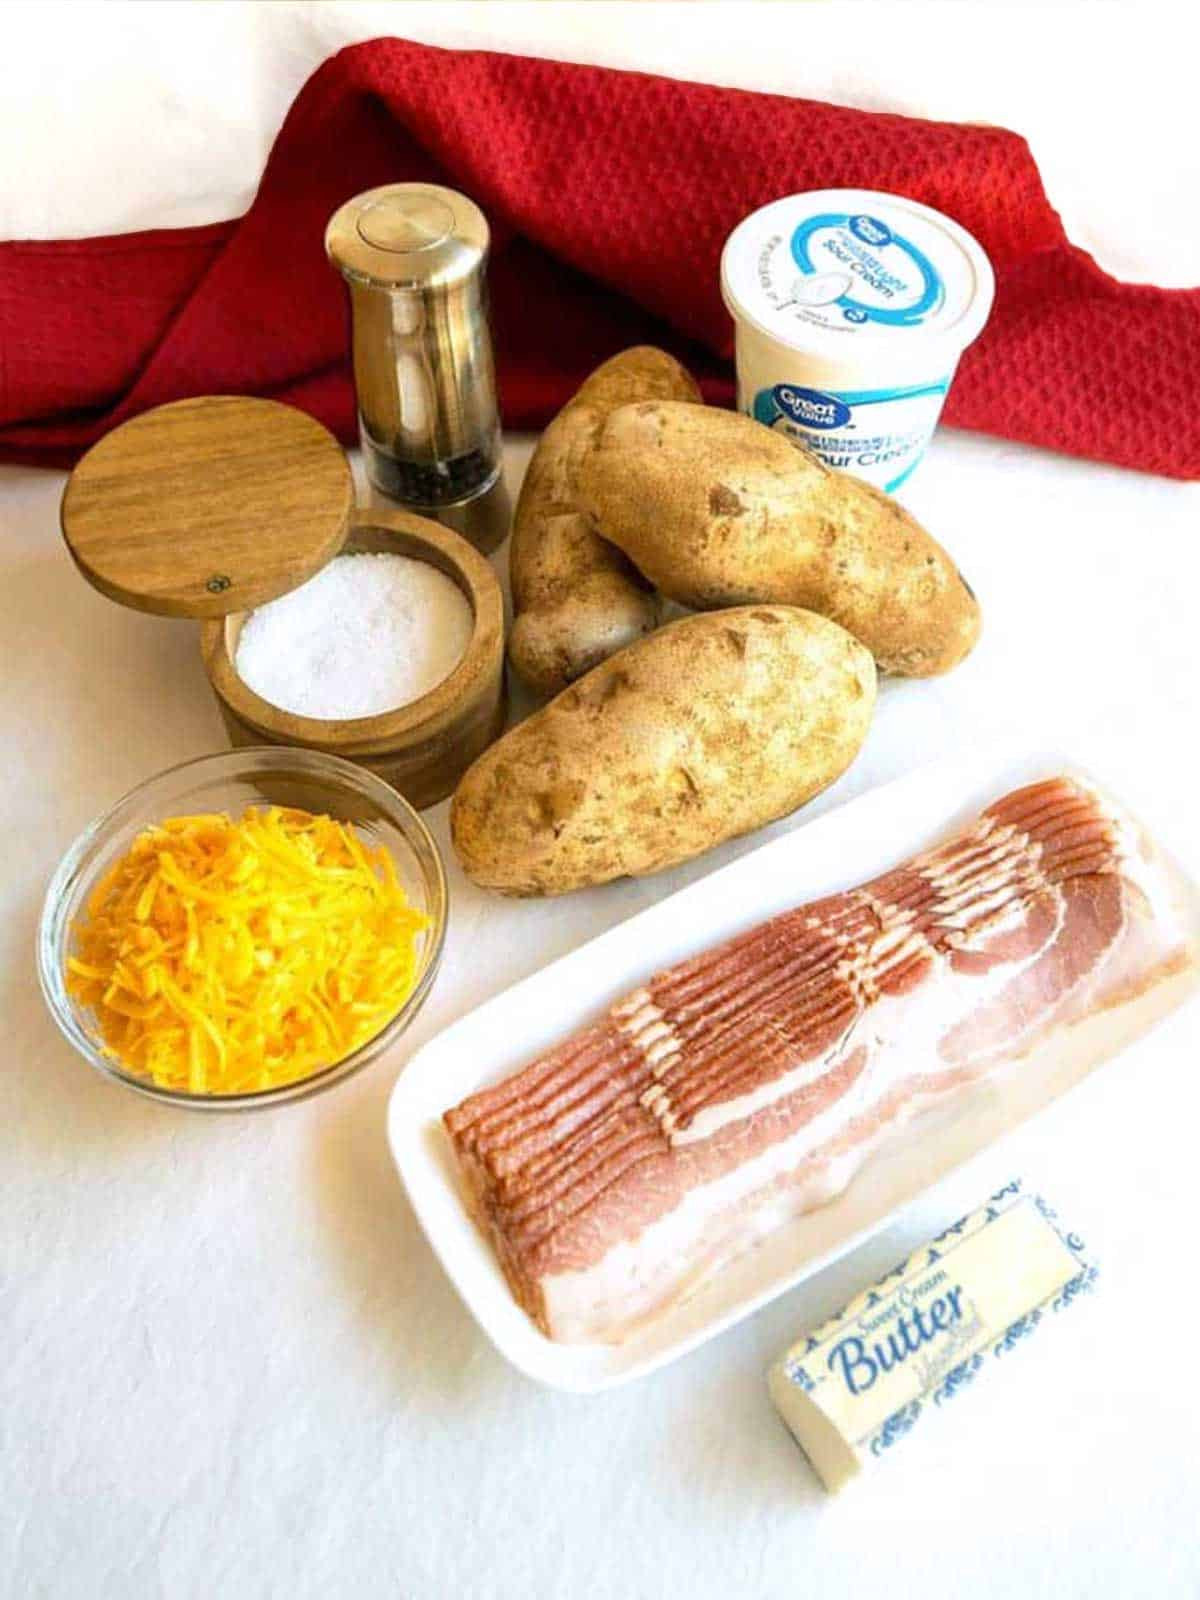 Ingredients for Twice Baked Potato Casserole